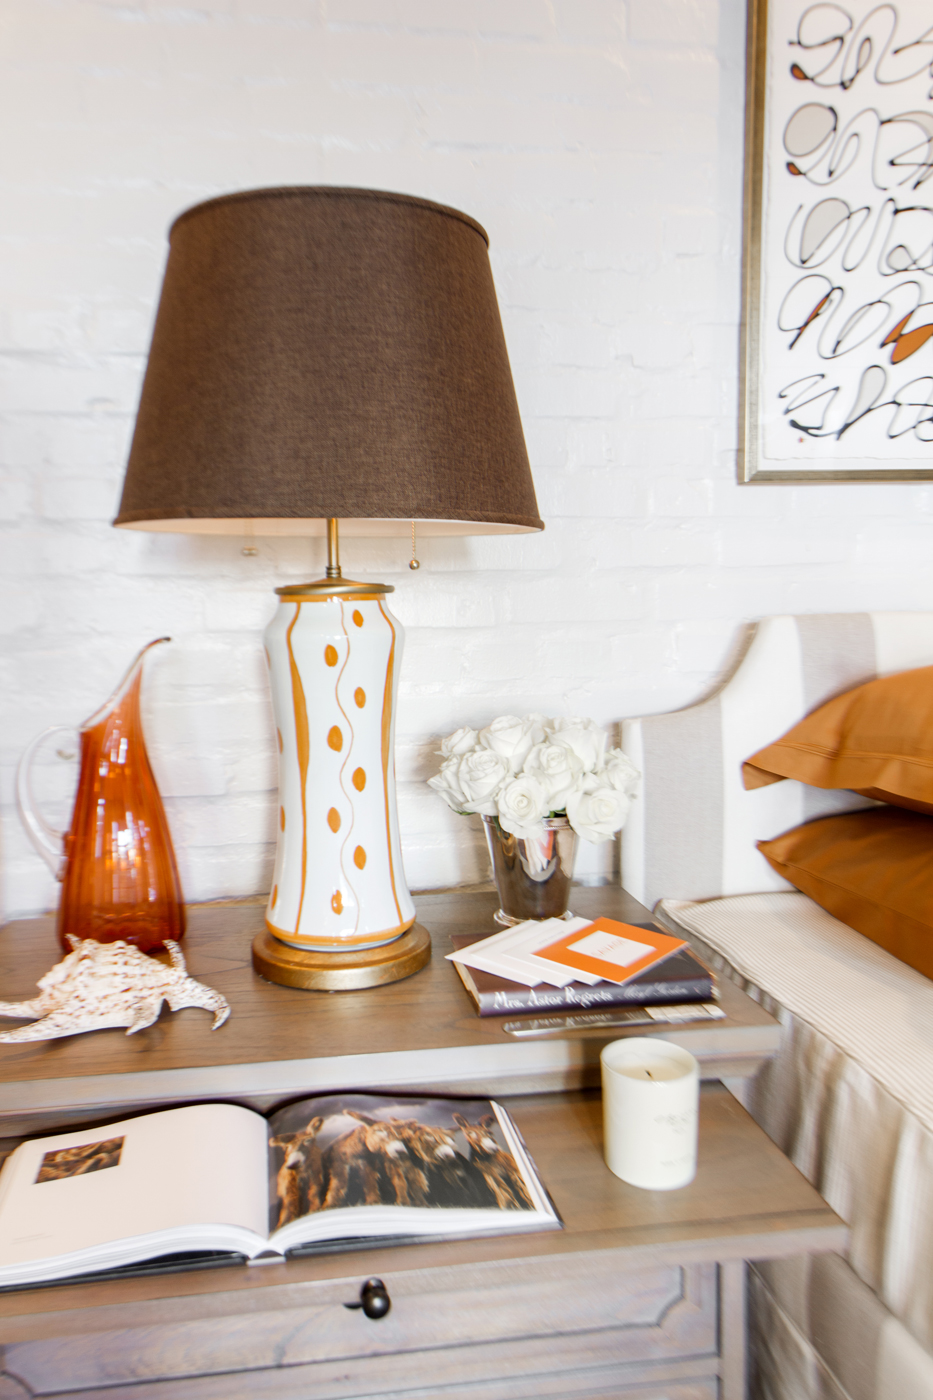 Bedside table accessories with orange and white modern table lamp | Savage Interior Design